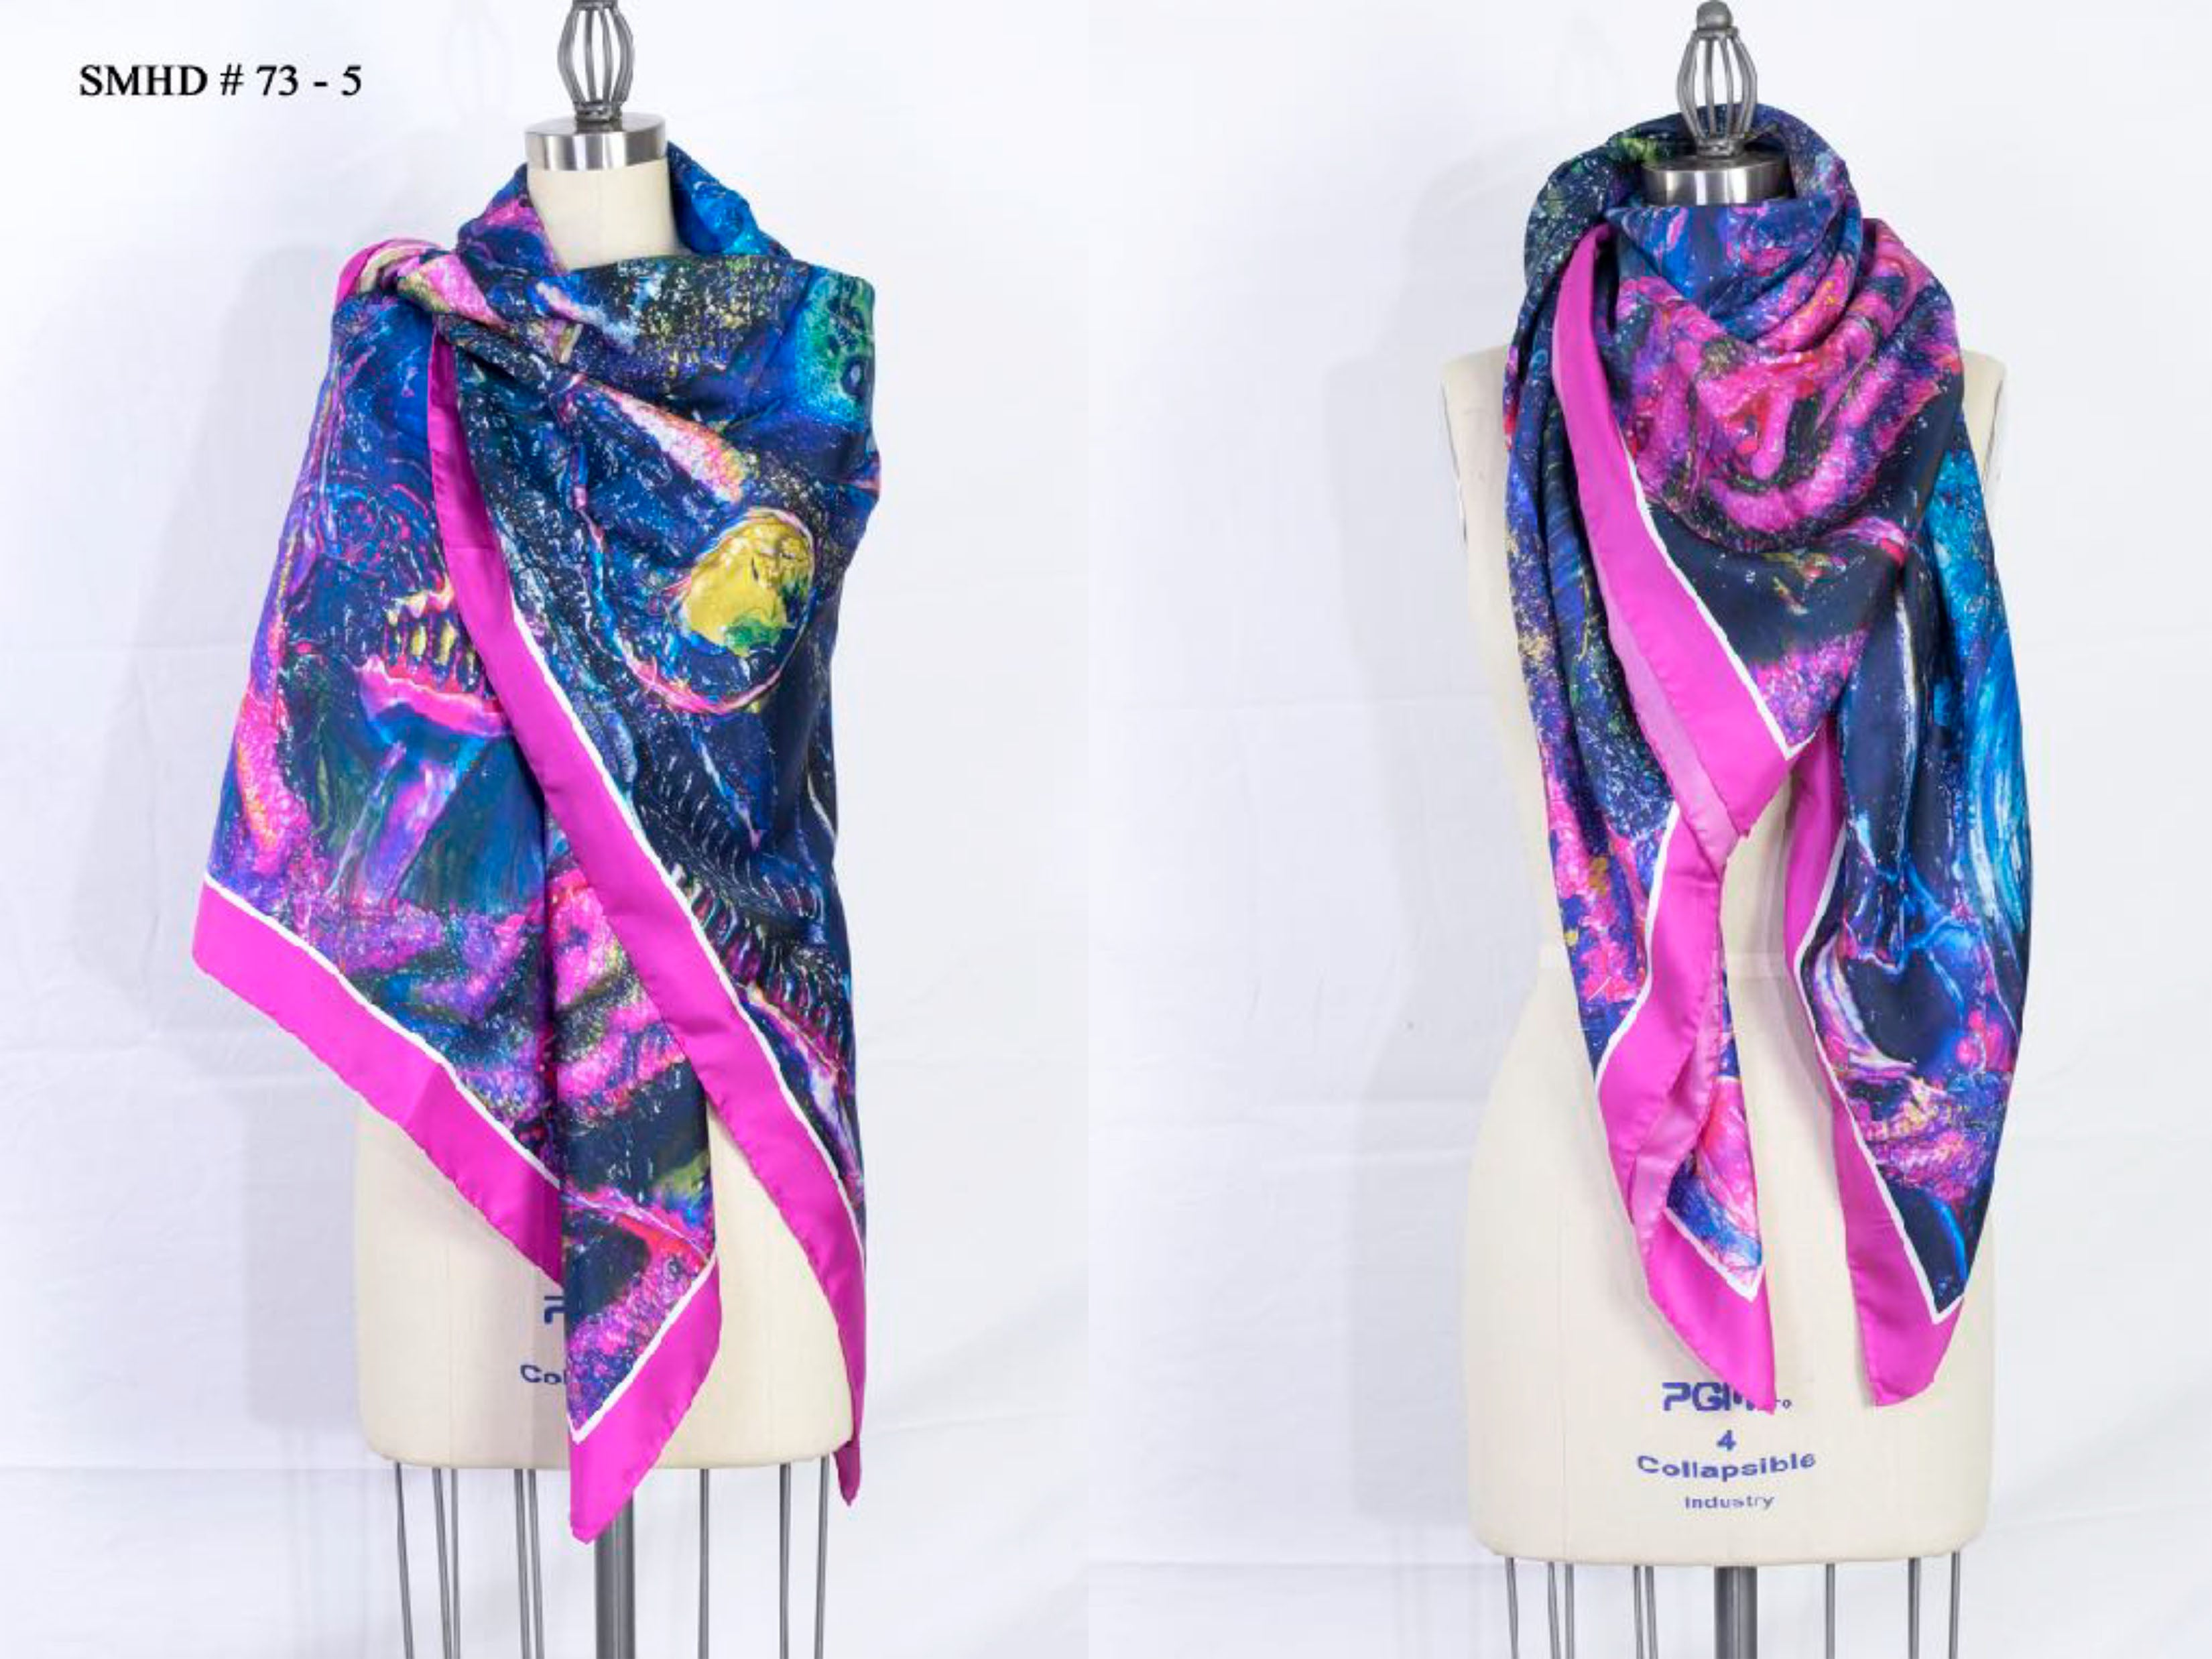 """The Mantra"" Stola - Made in Italy Silk Art Scarf - SMHDGalleries"